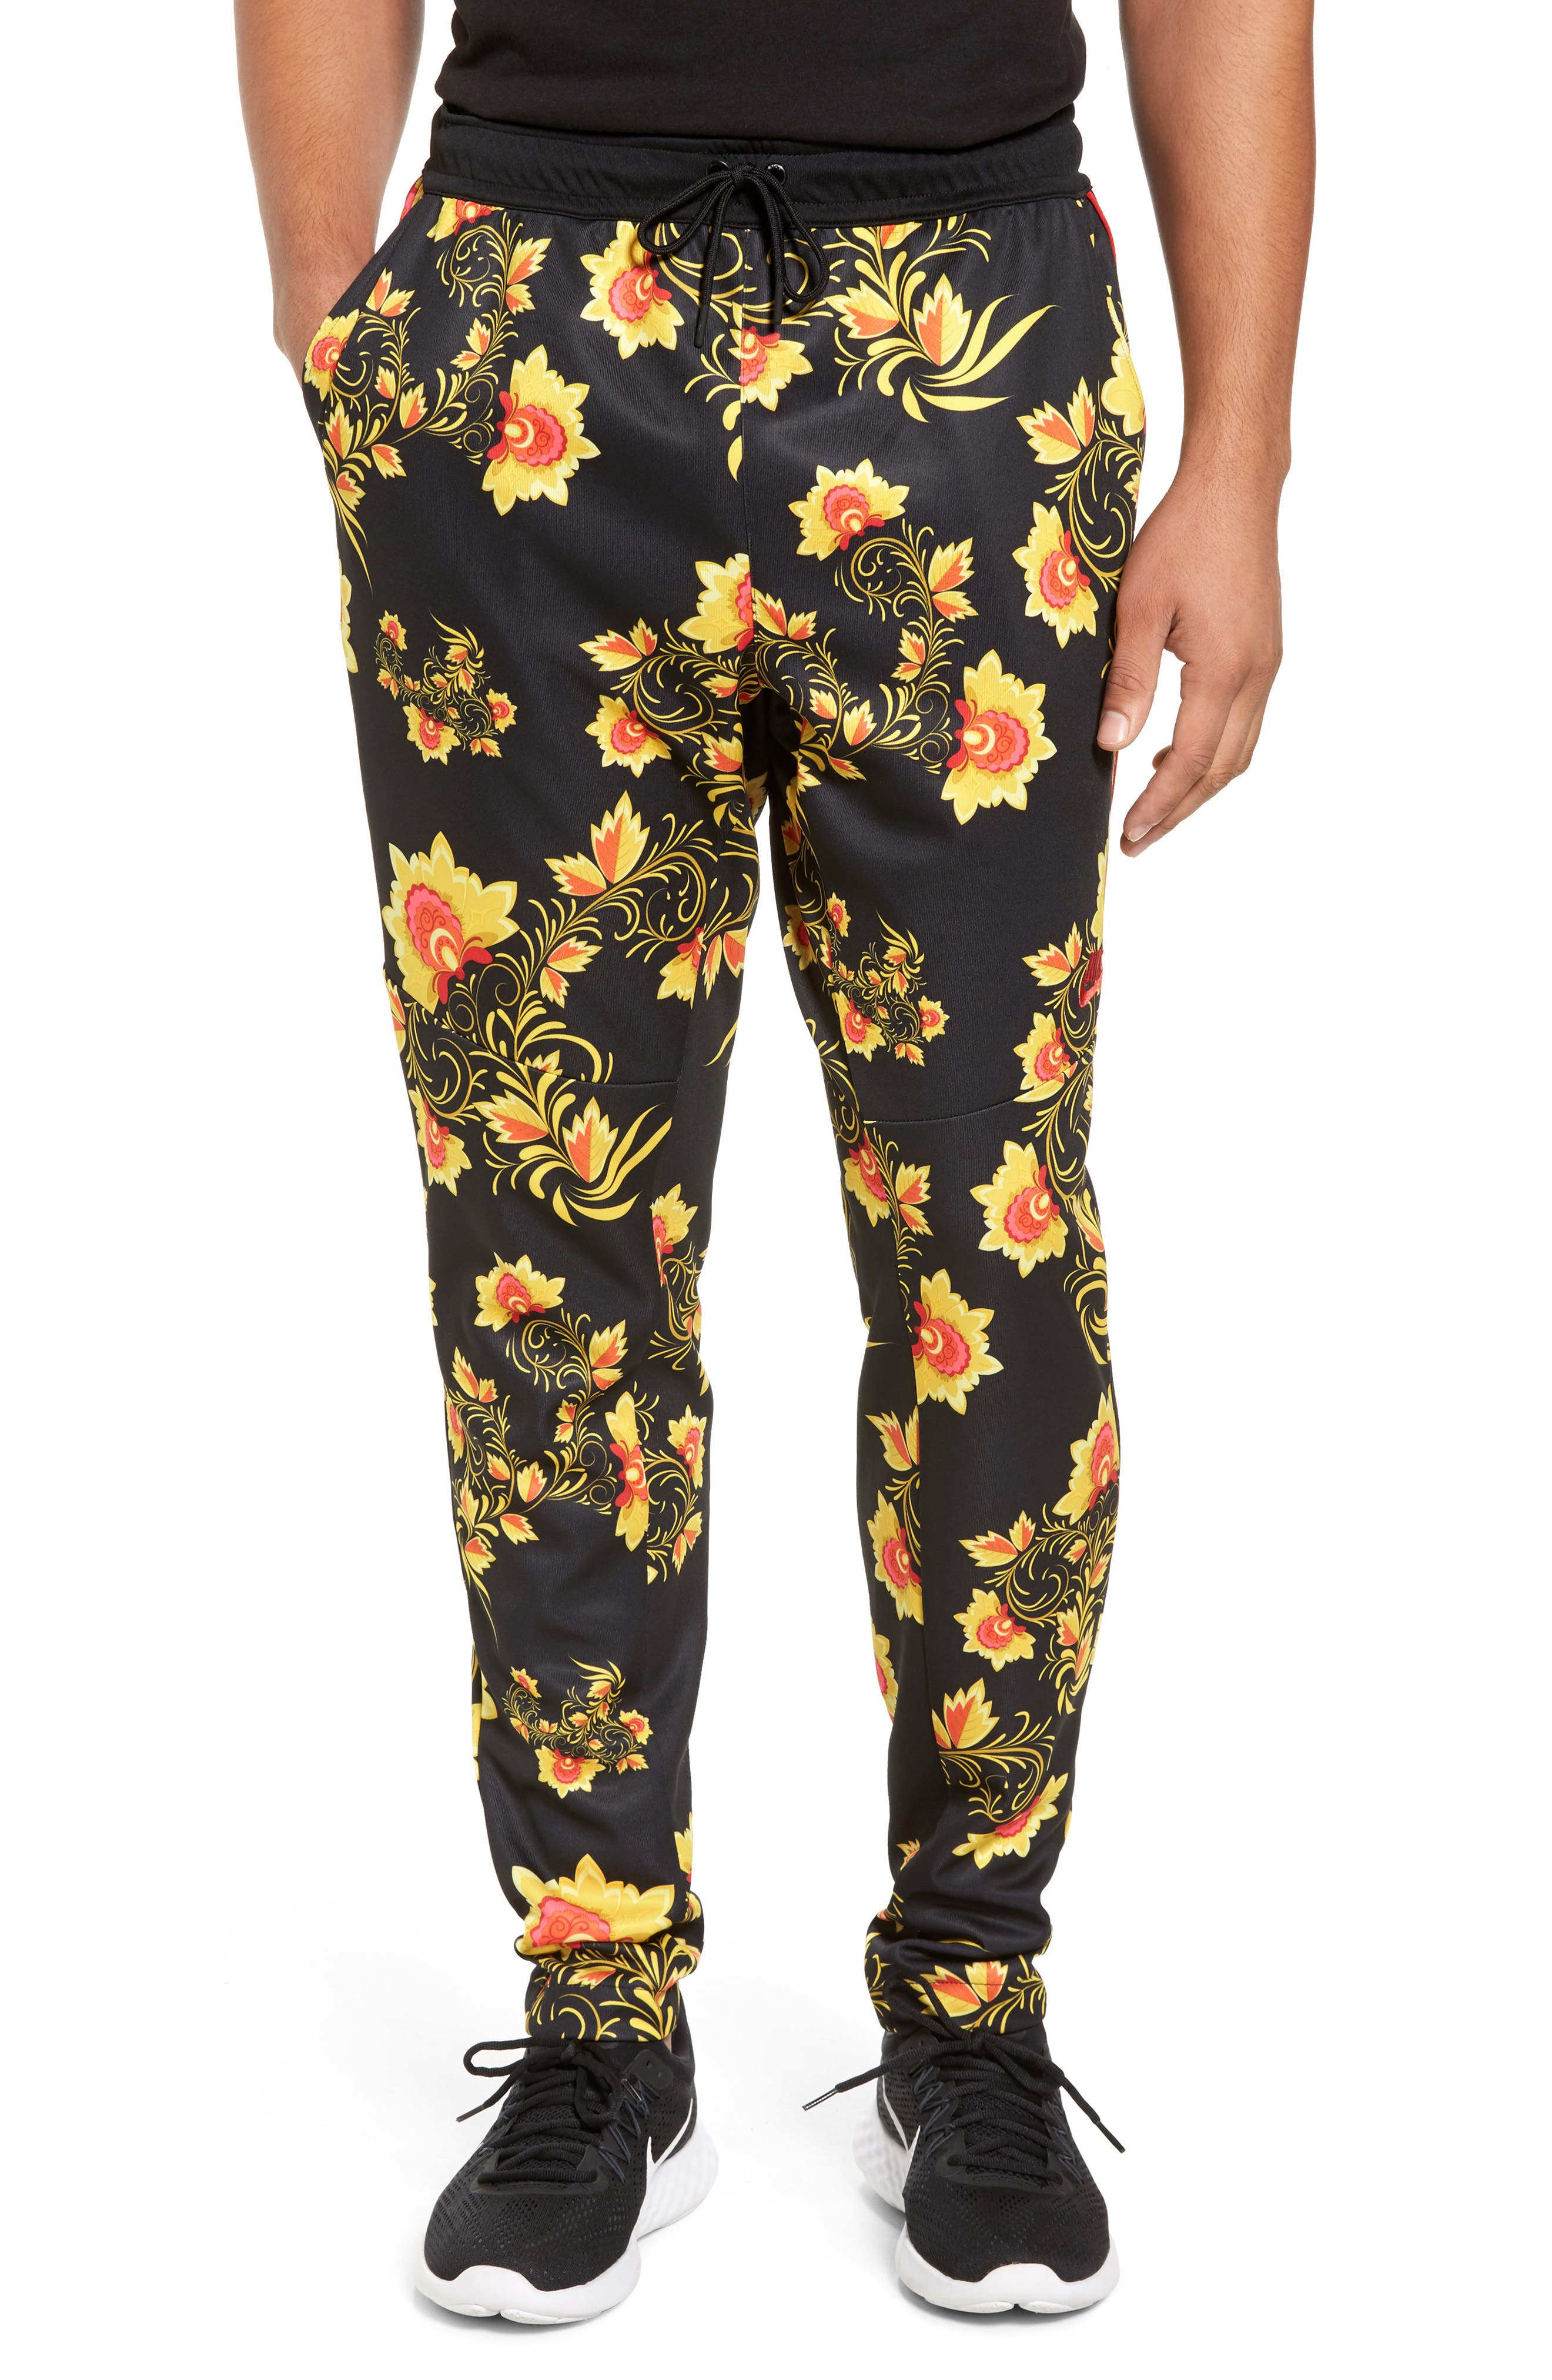 NSW Tribute Jogger Pants,                         Main,                         color, Tour Yellow/ Black/ Red